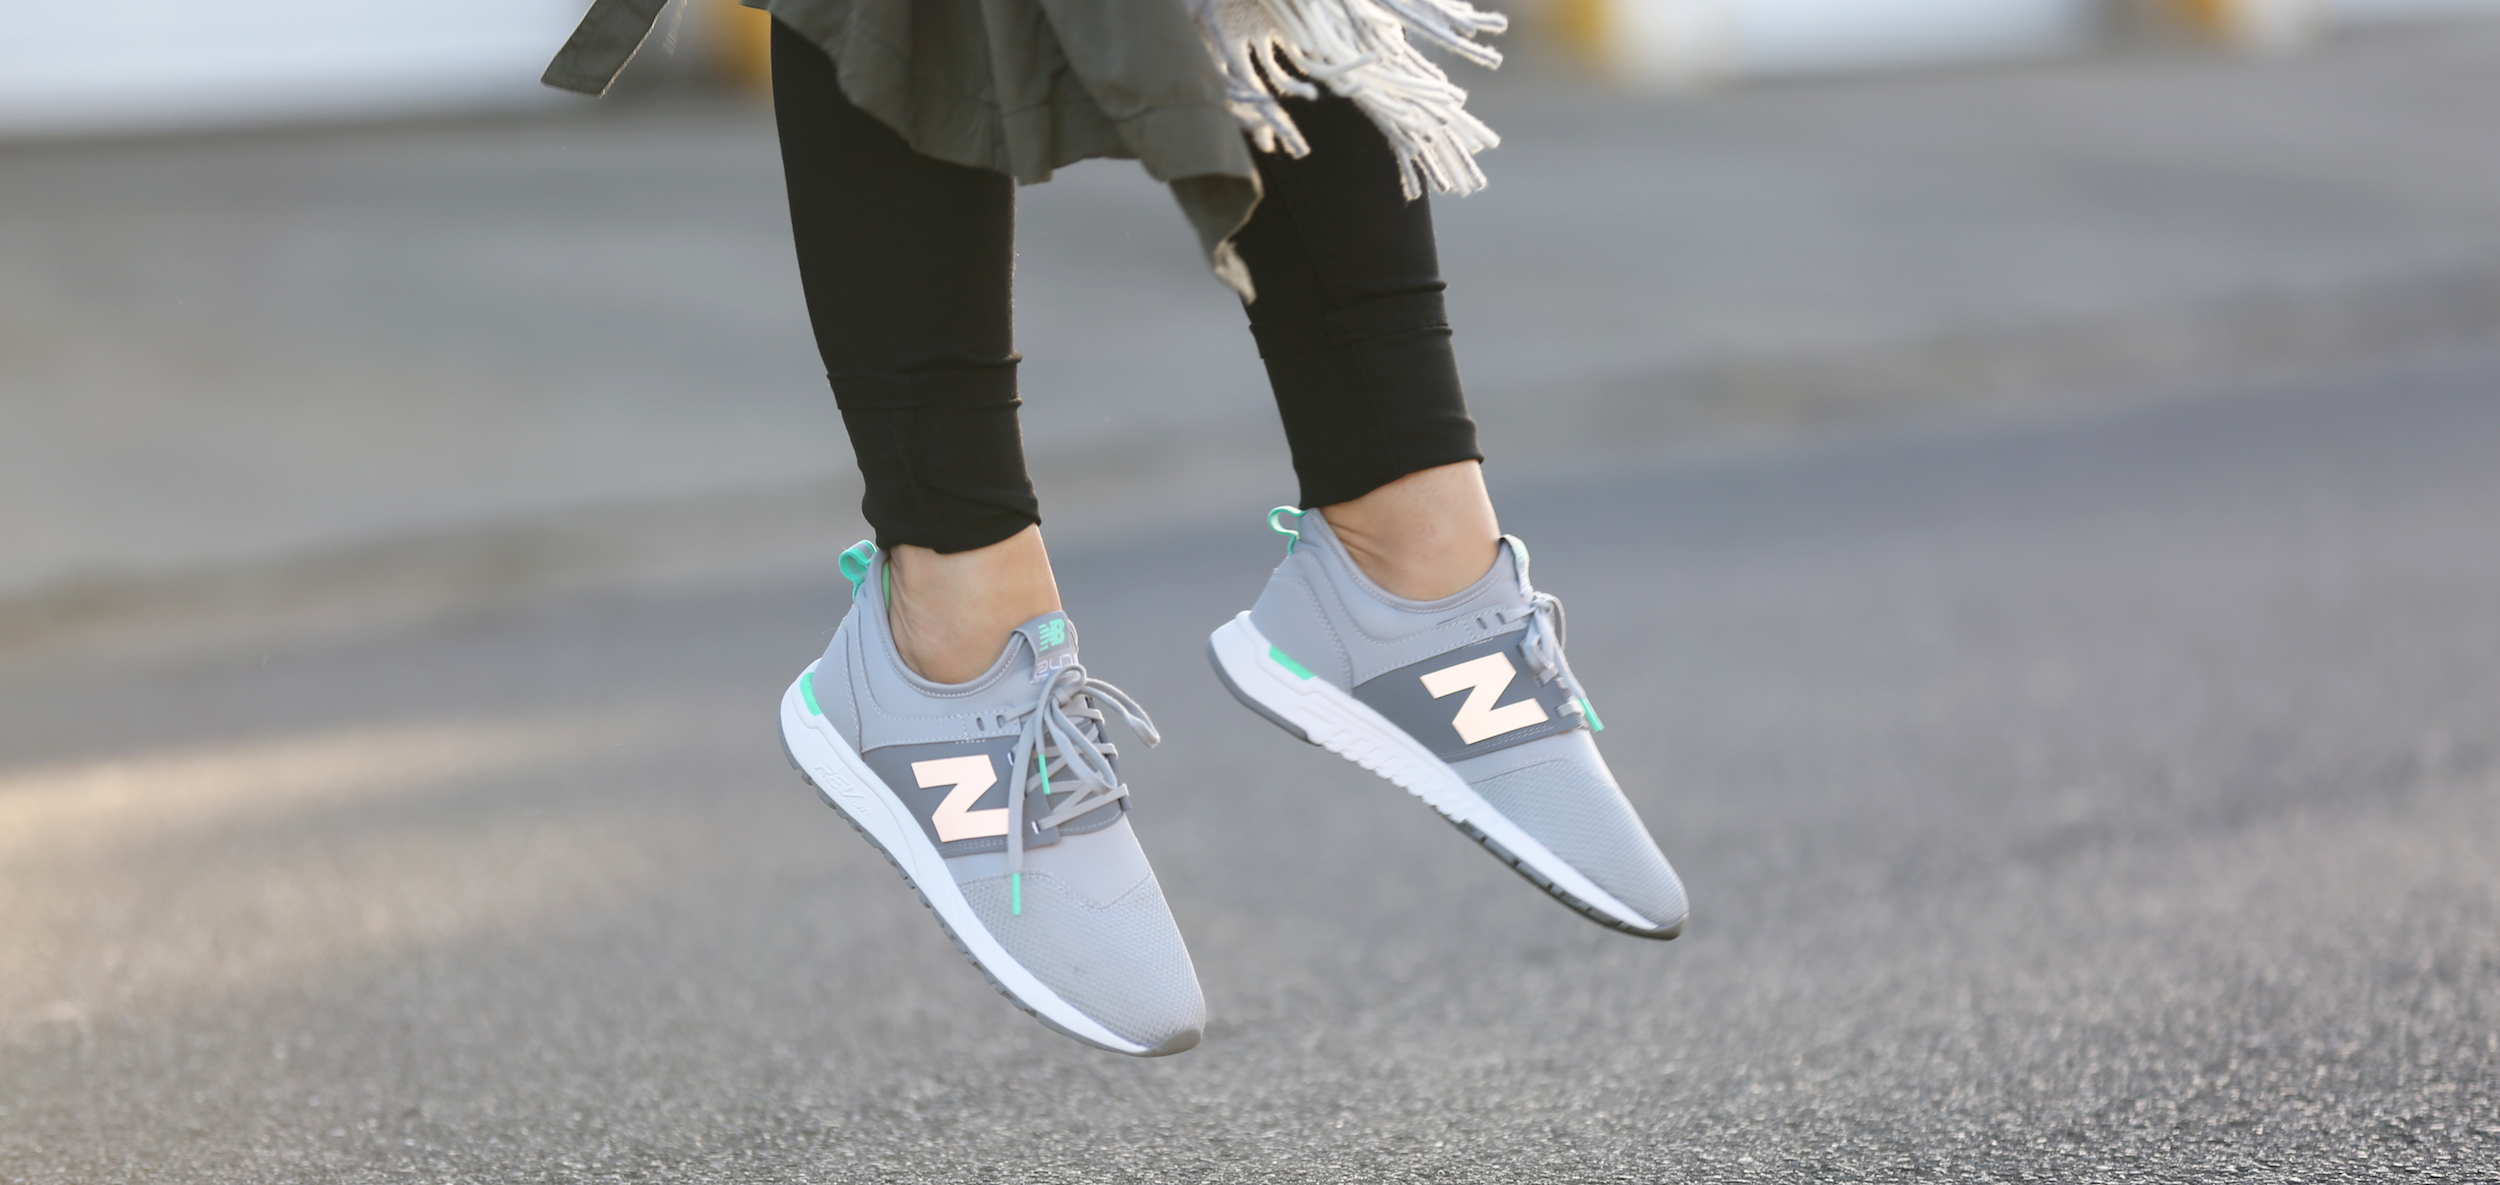 New Balance Life in 24/7